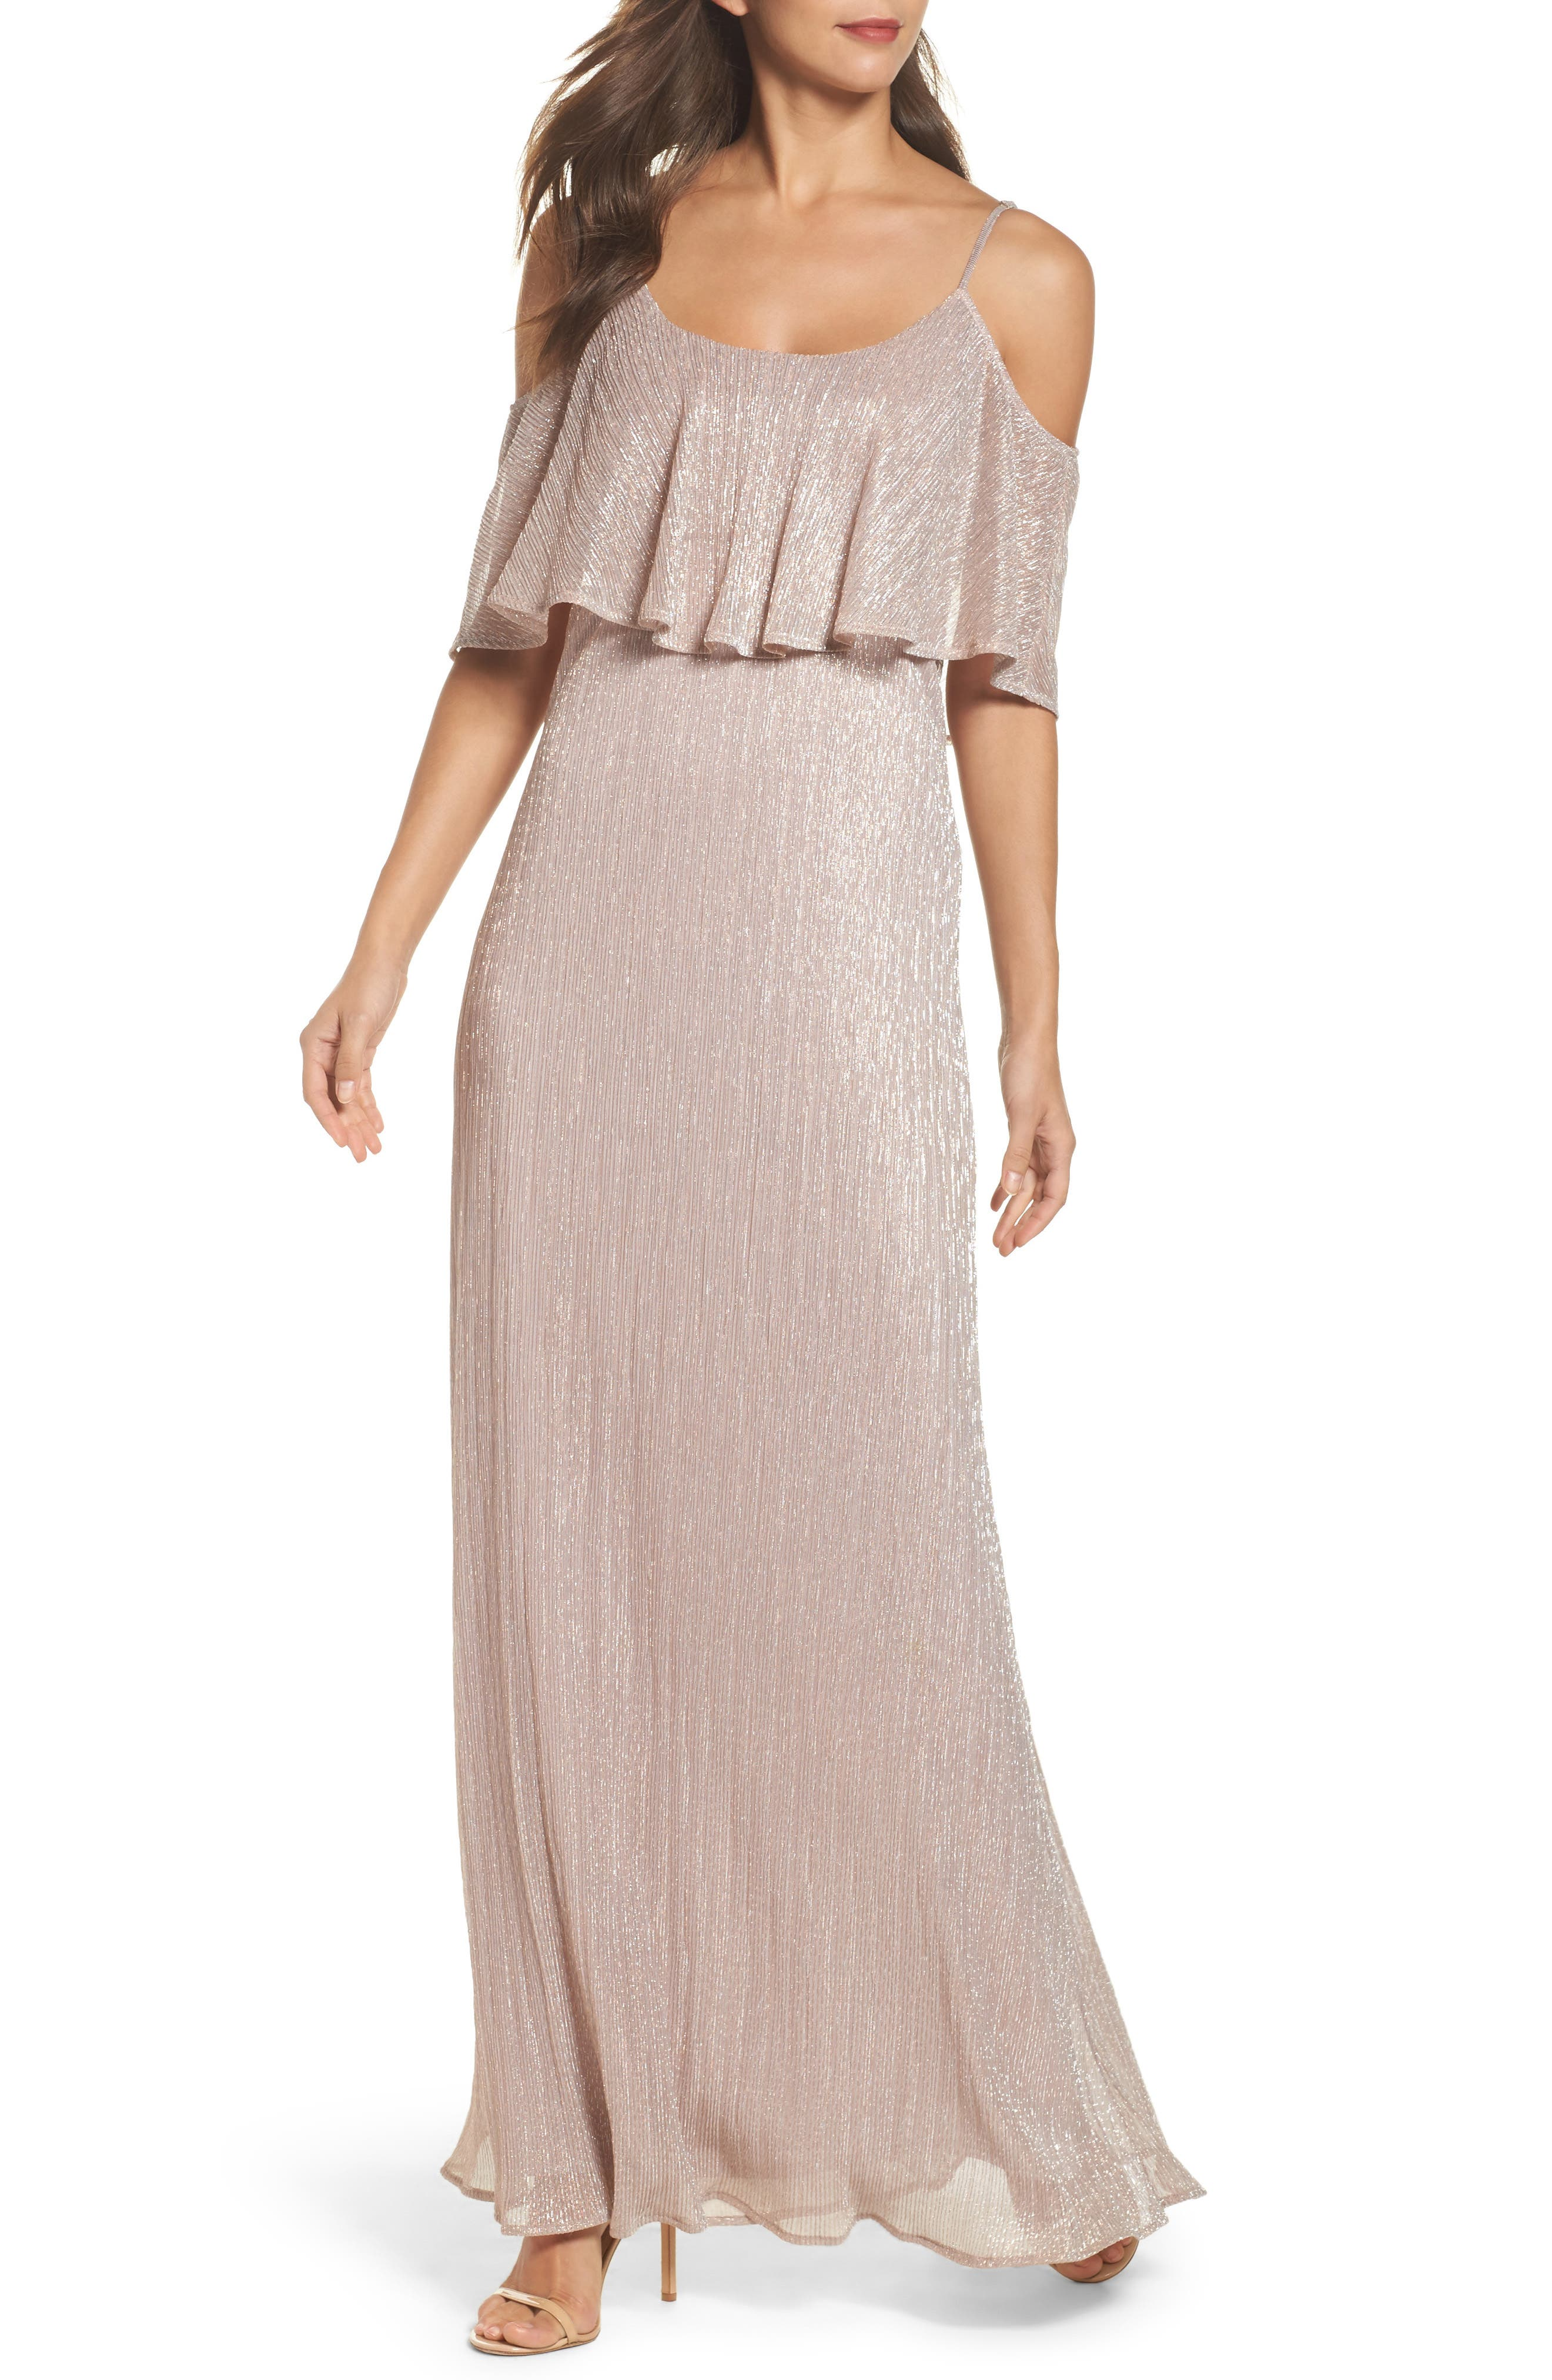 Caitlin Ruffle Maxi Dress,                             Main thumbnail 1, color,                             Magic Muave Glitter